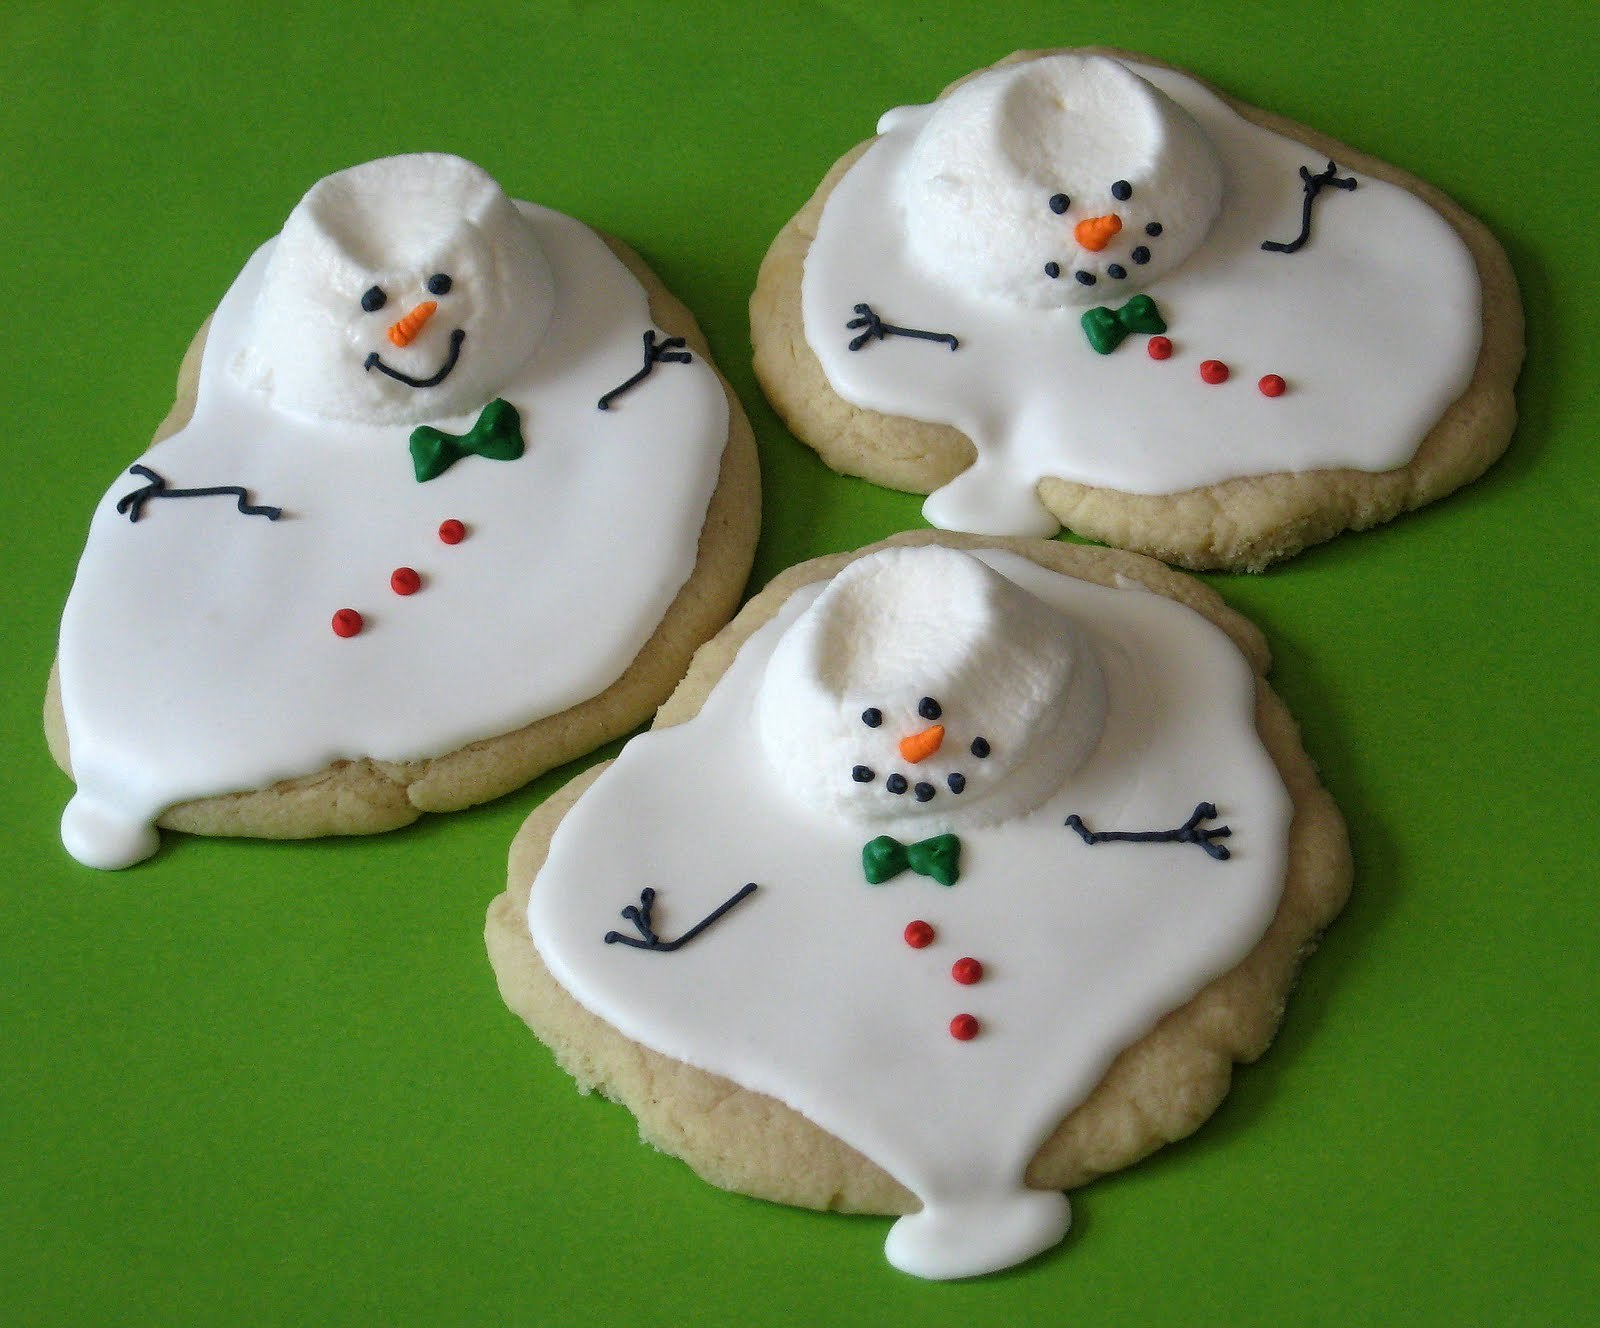 df947486940664c2d101_melted_snowman_cookies.jpg